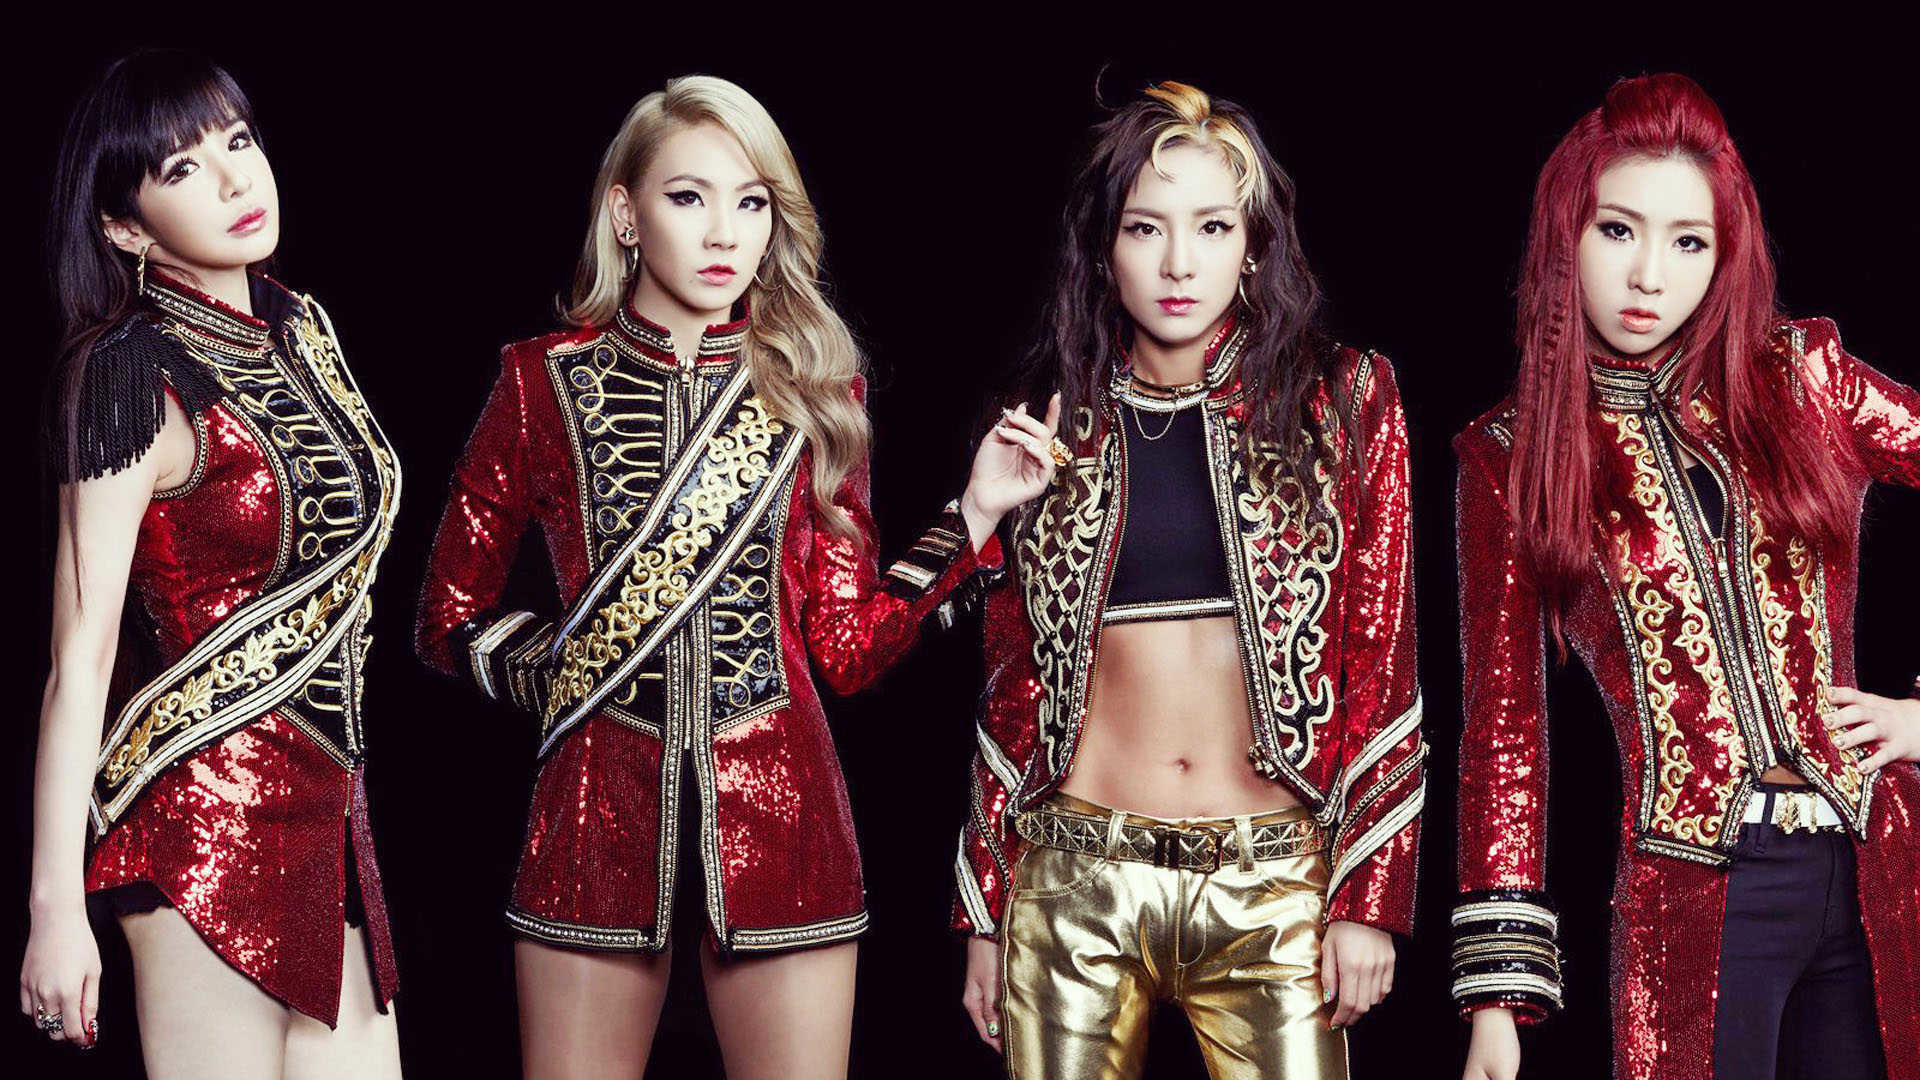 2ne1 Kpop Hd Wallpaper Widescreen Background Images 3167 Pictures